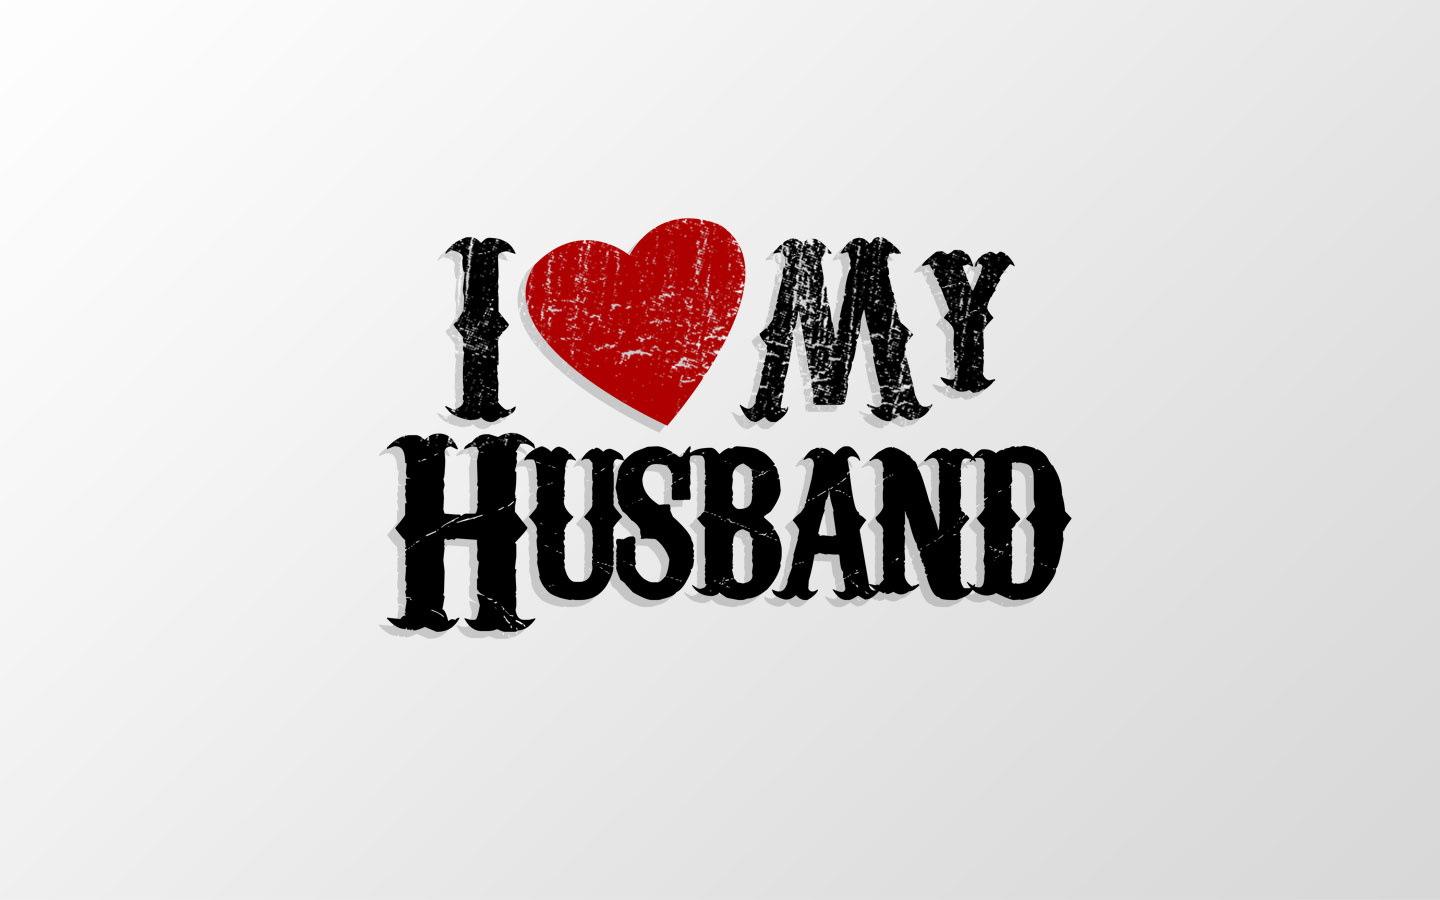 Gm My Love Wallpaper : I Love My Husband Wallpaper - christian Wallpapers and Backgrounds